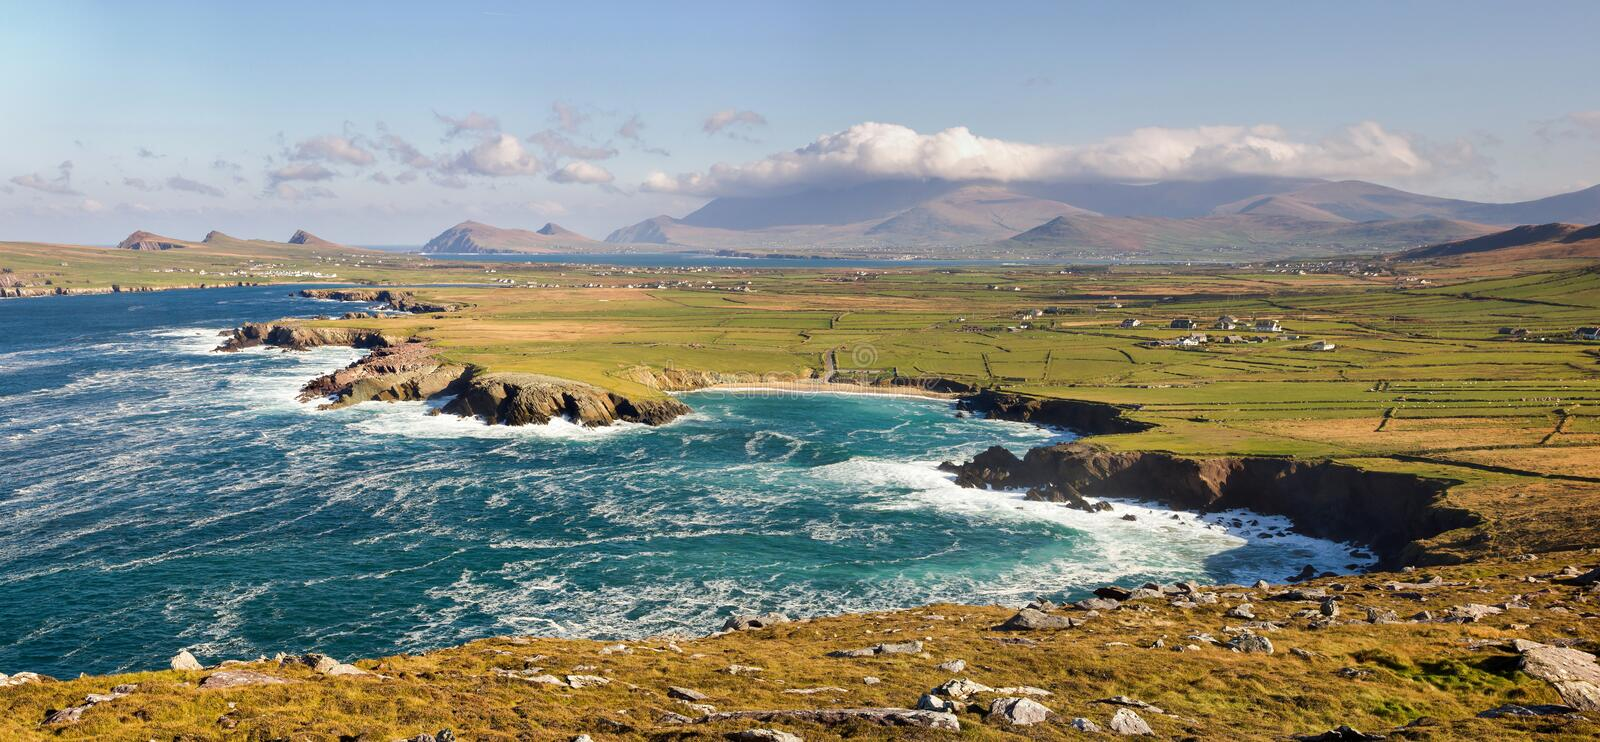 Landscape on Dingle peninsula. Co Kerry, Ireland with Clogher strand beach, the three sister hills and part of Sybil head. Brandon mountain is in the background royalty free stock photos